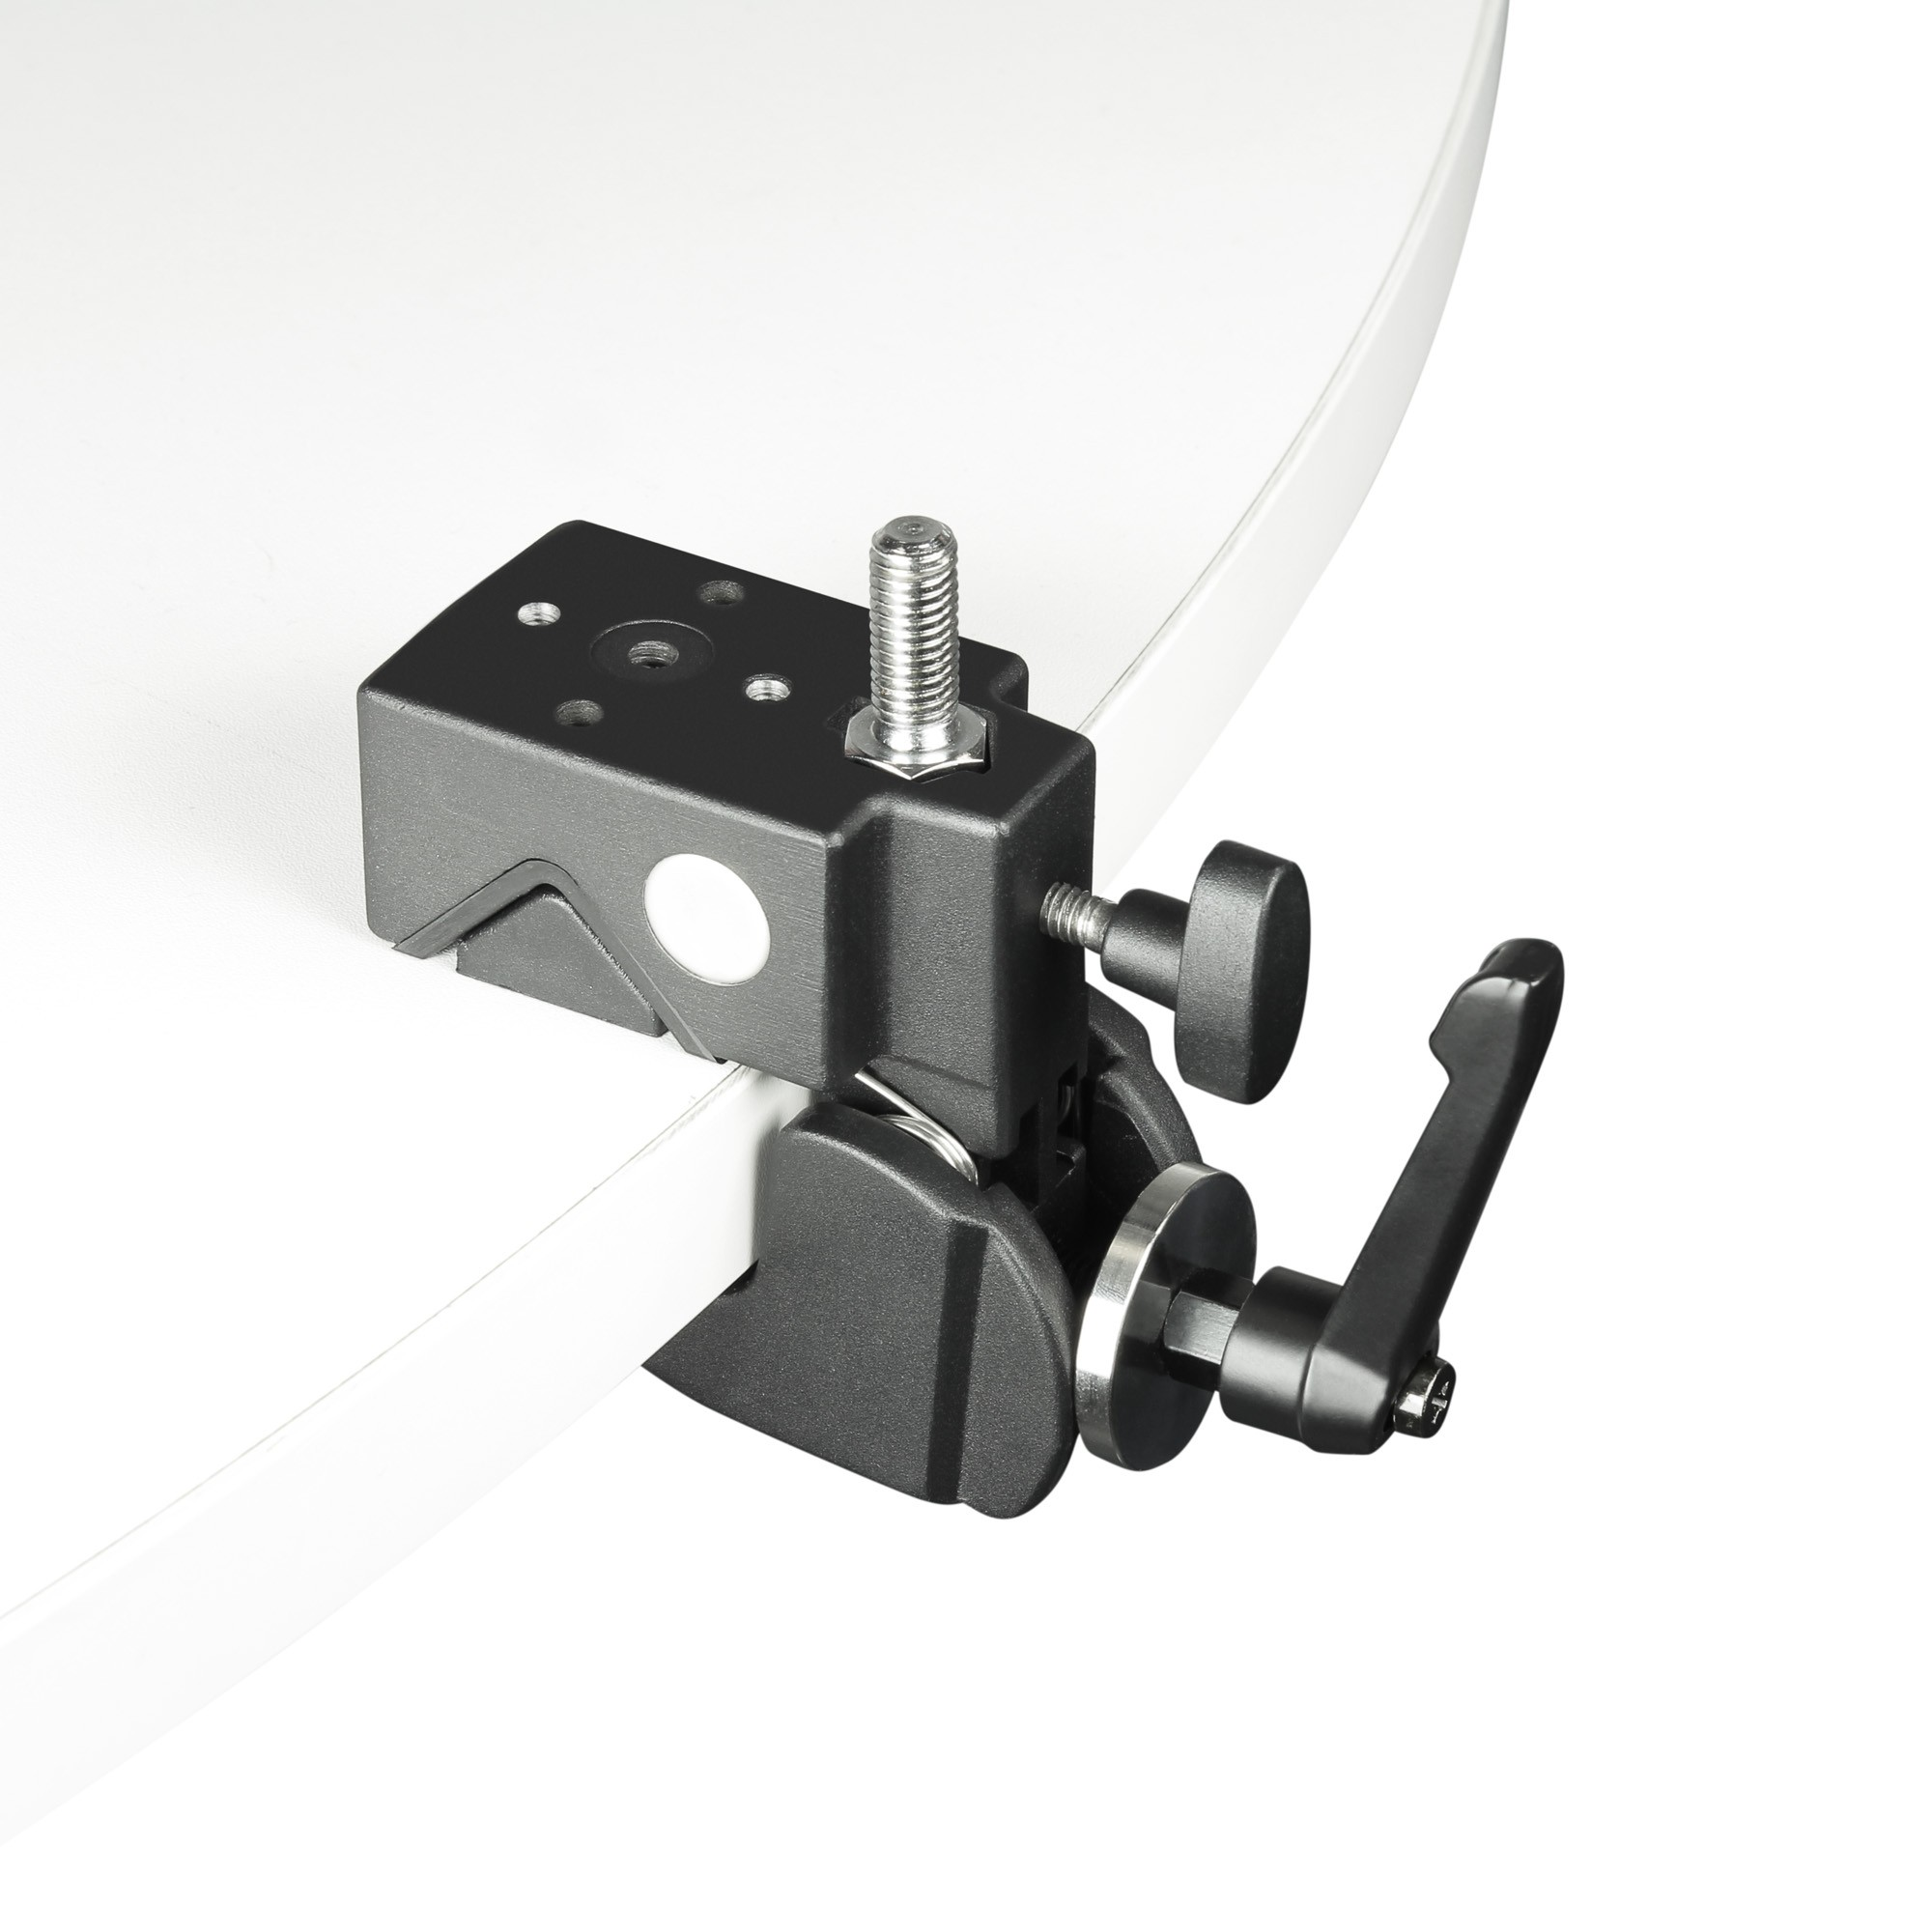 CURV 500 TMB Truss Clamp for CURV 500® Satellites